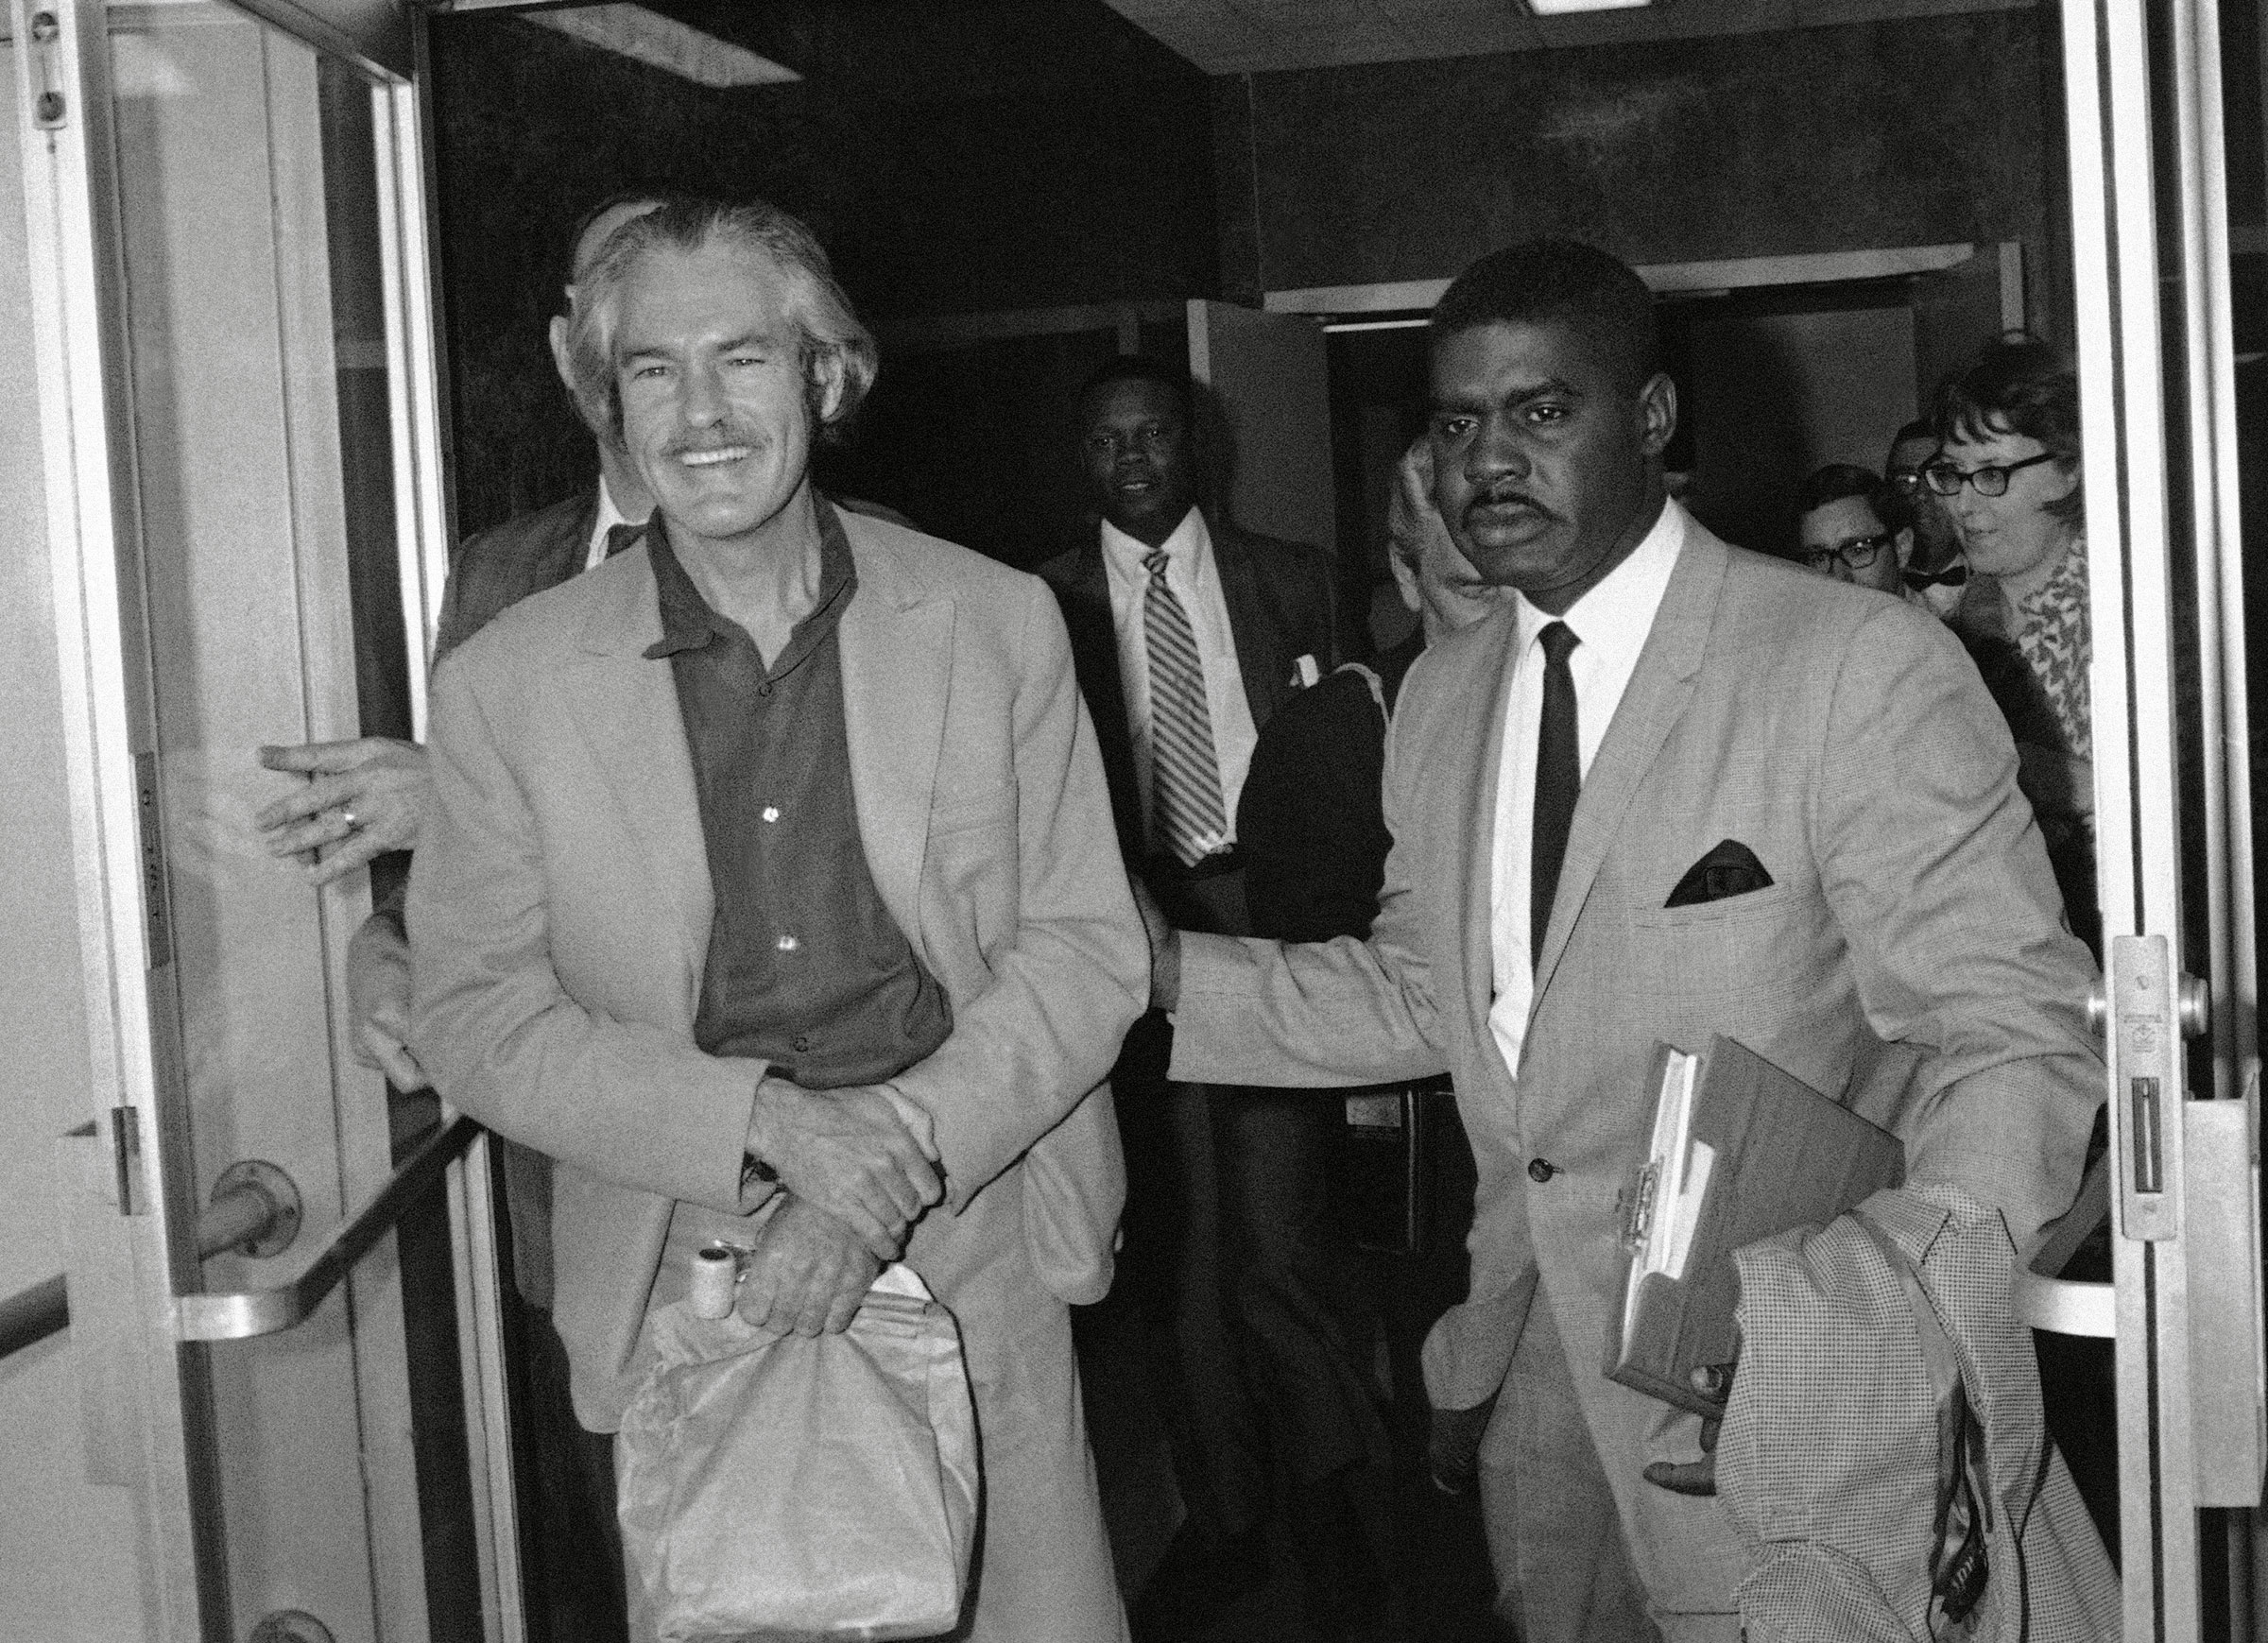 Timothy Leary Dr. Timothy Leary displays a big smile as he's escorted by U.S. Narcotics Bureau agents on his arrival at Los Angeles airport, . The former Harvard professor escaped in September, 1970 from prison in San Luis Obispo County, Calif., where he was serving a 10-year sentence on a drug conviction. Leary was expelled from Afghanistan January 17Dr. Timothy Leary, Los Angeles, USA